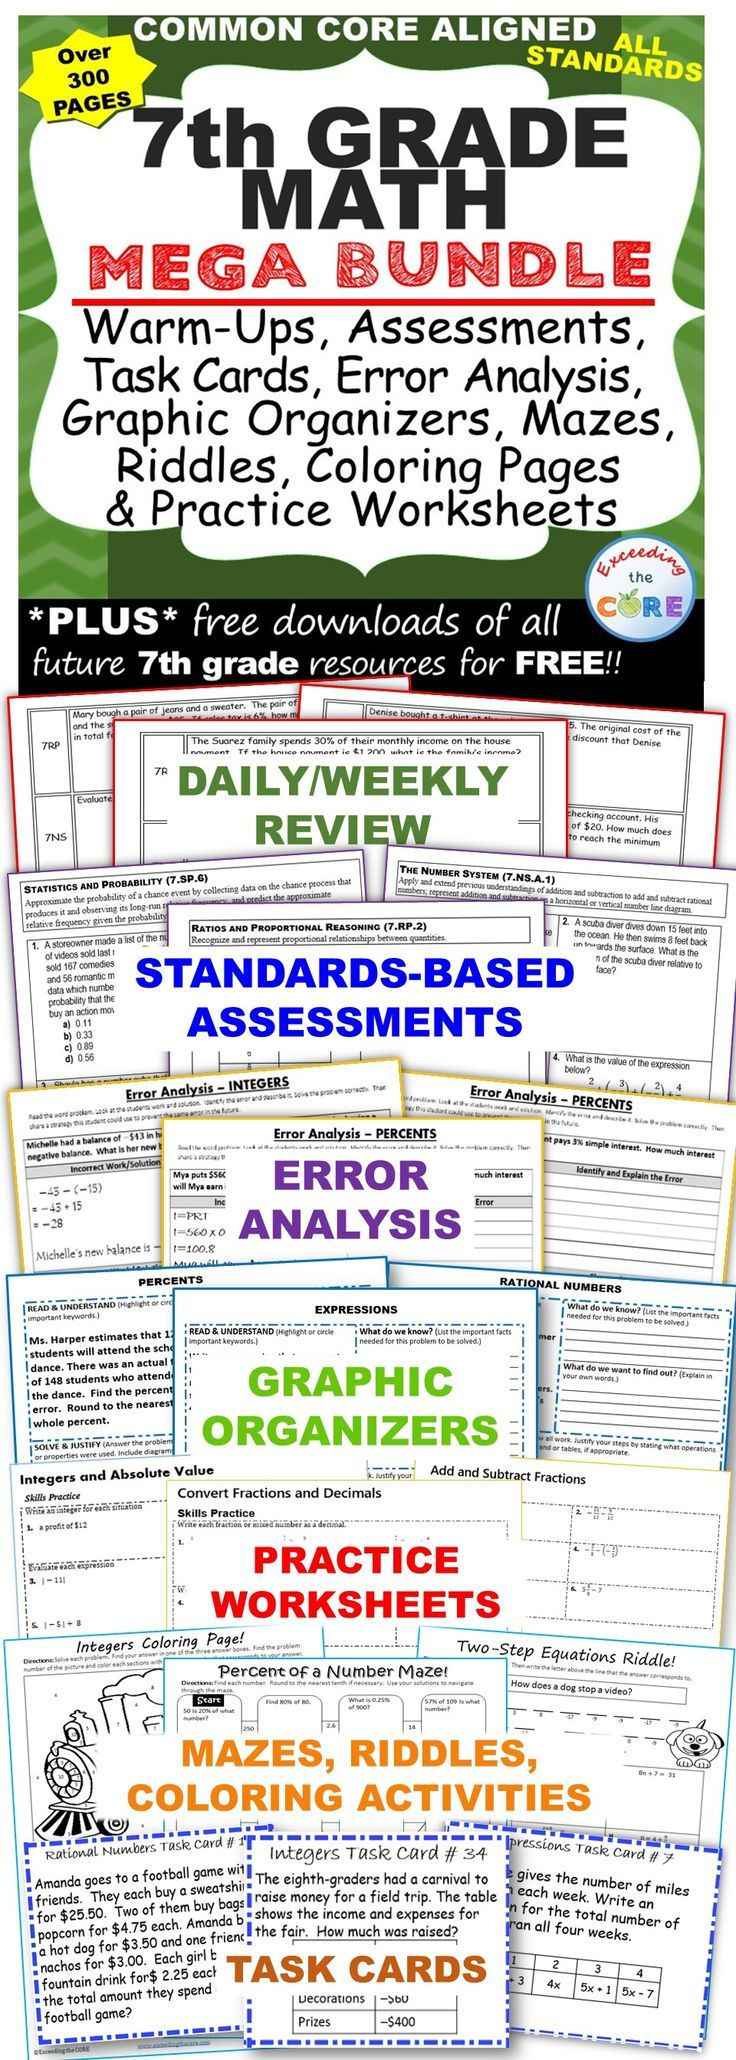 worksheet Common Core 7th Grade Math Worksheets 7th grade math common core assessments warm ups task cards mega bundle includes 38 of my top selling resources over